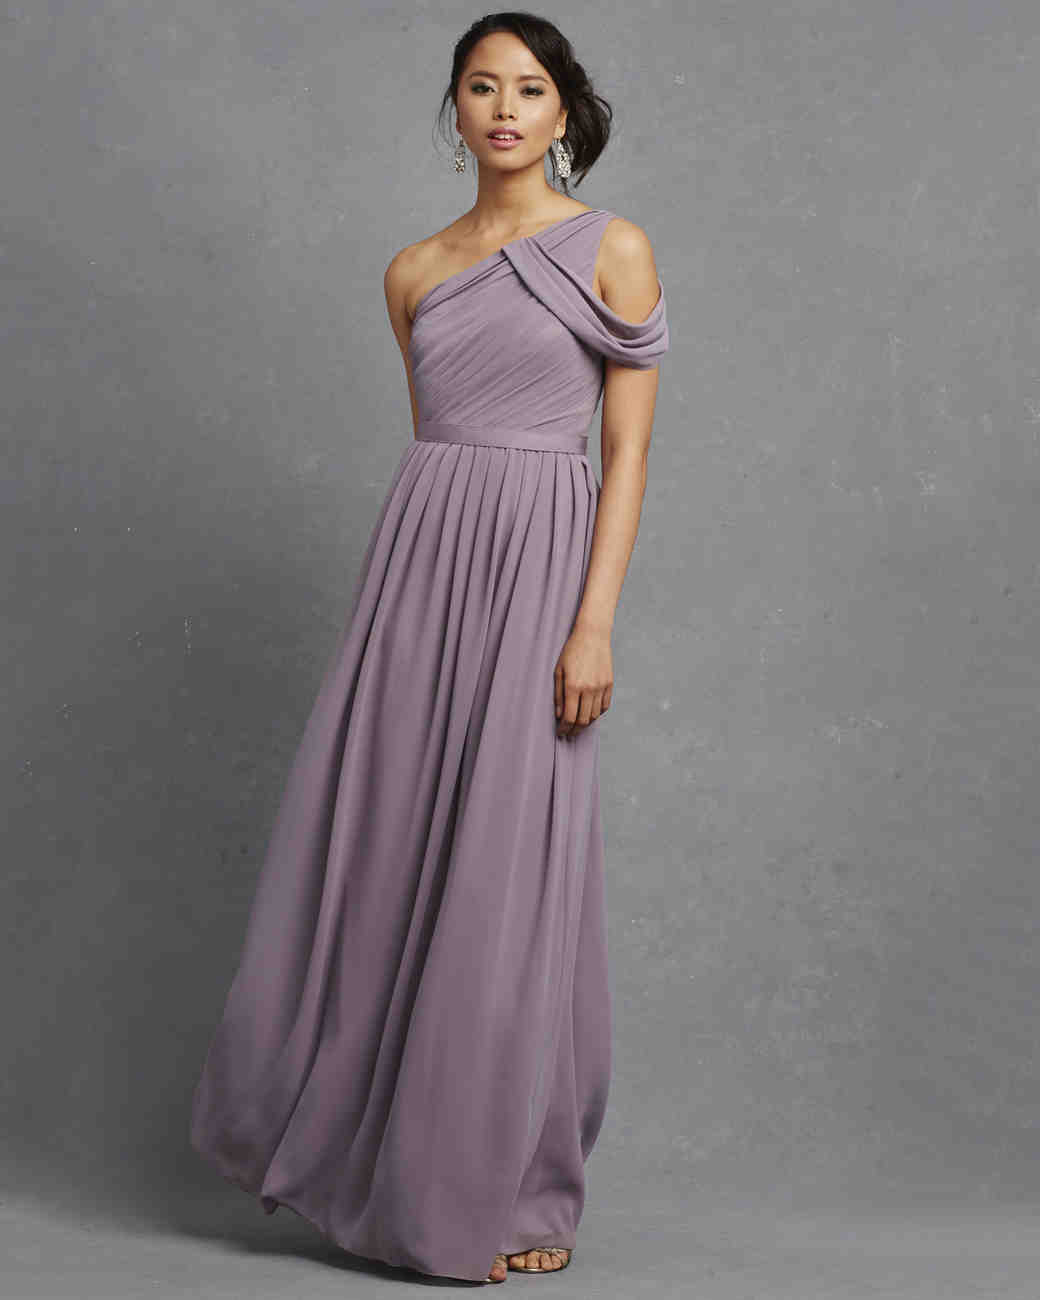 Purple Bridesmaid Dresses | Martha Stewart Weddings